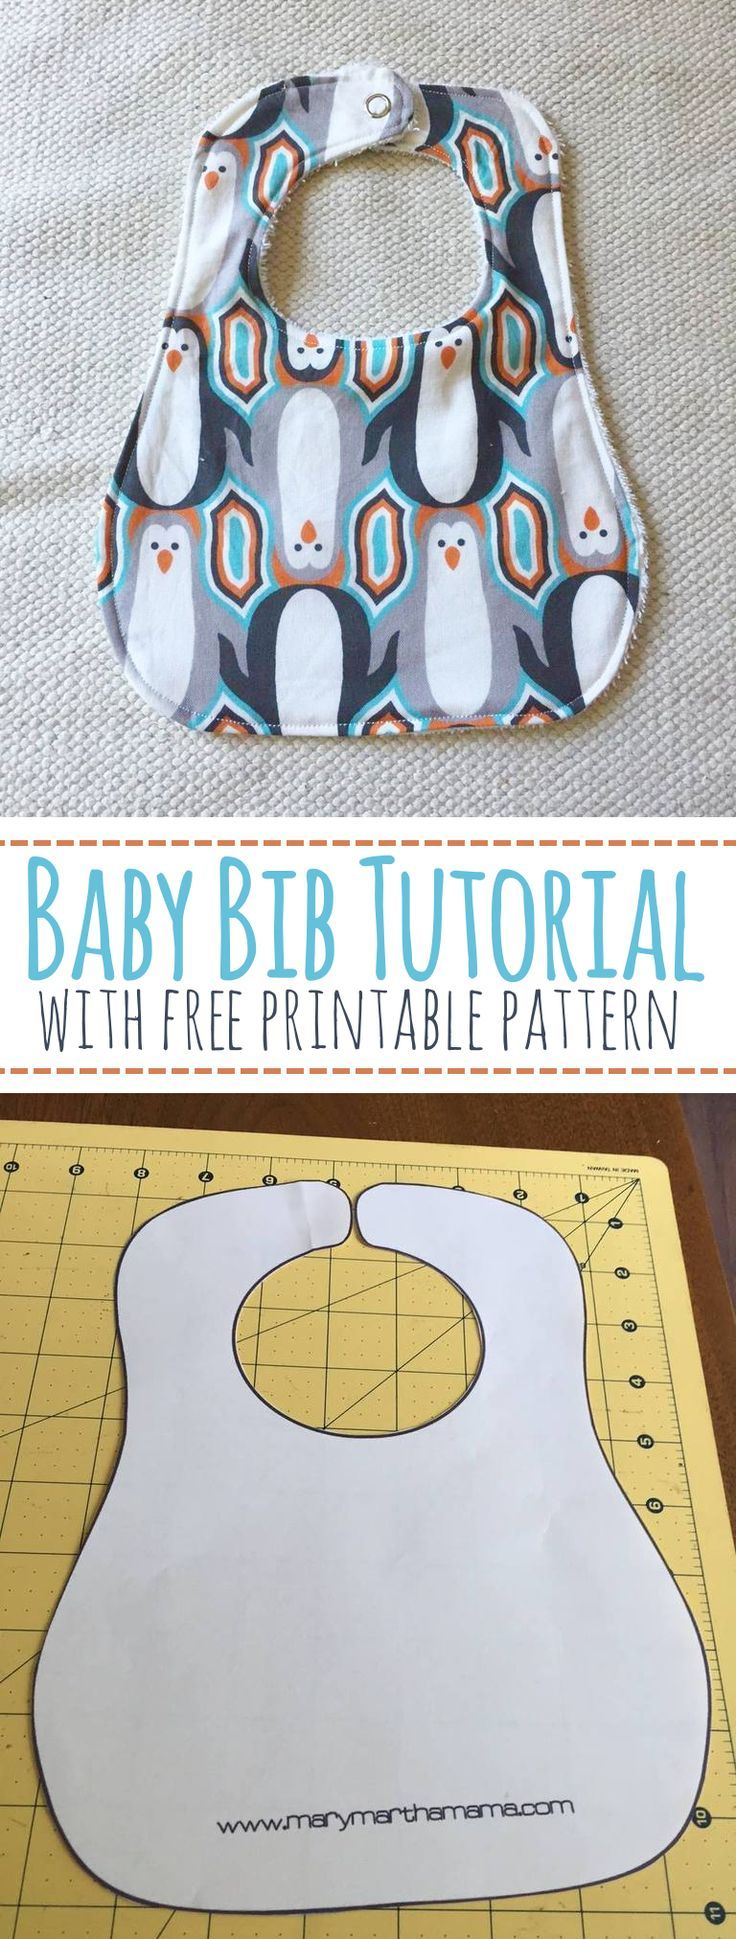 Baby Bib Tutorial with Free Printable Pattern – Mary Martha Mama ...